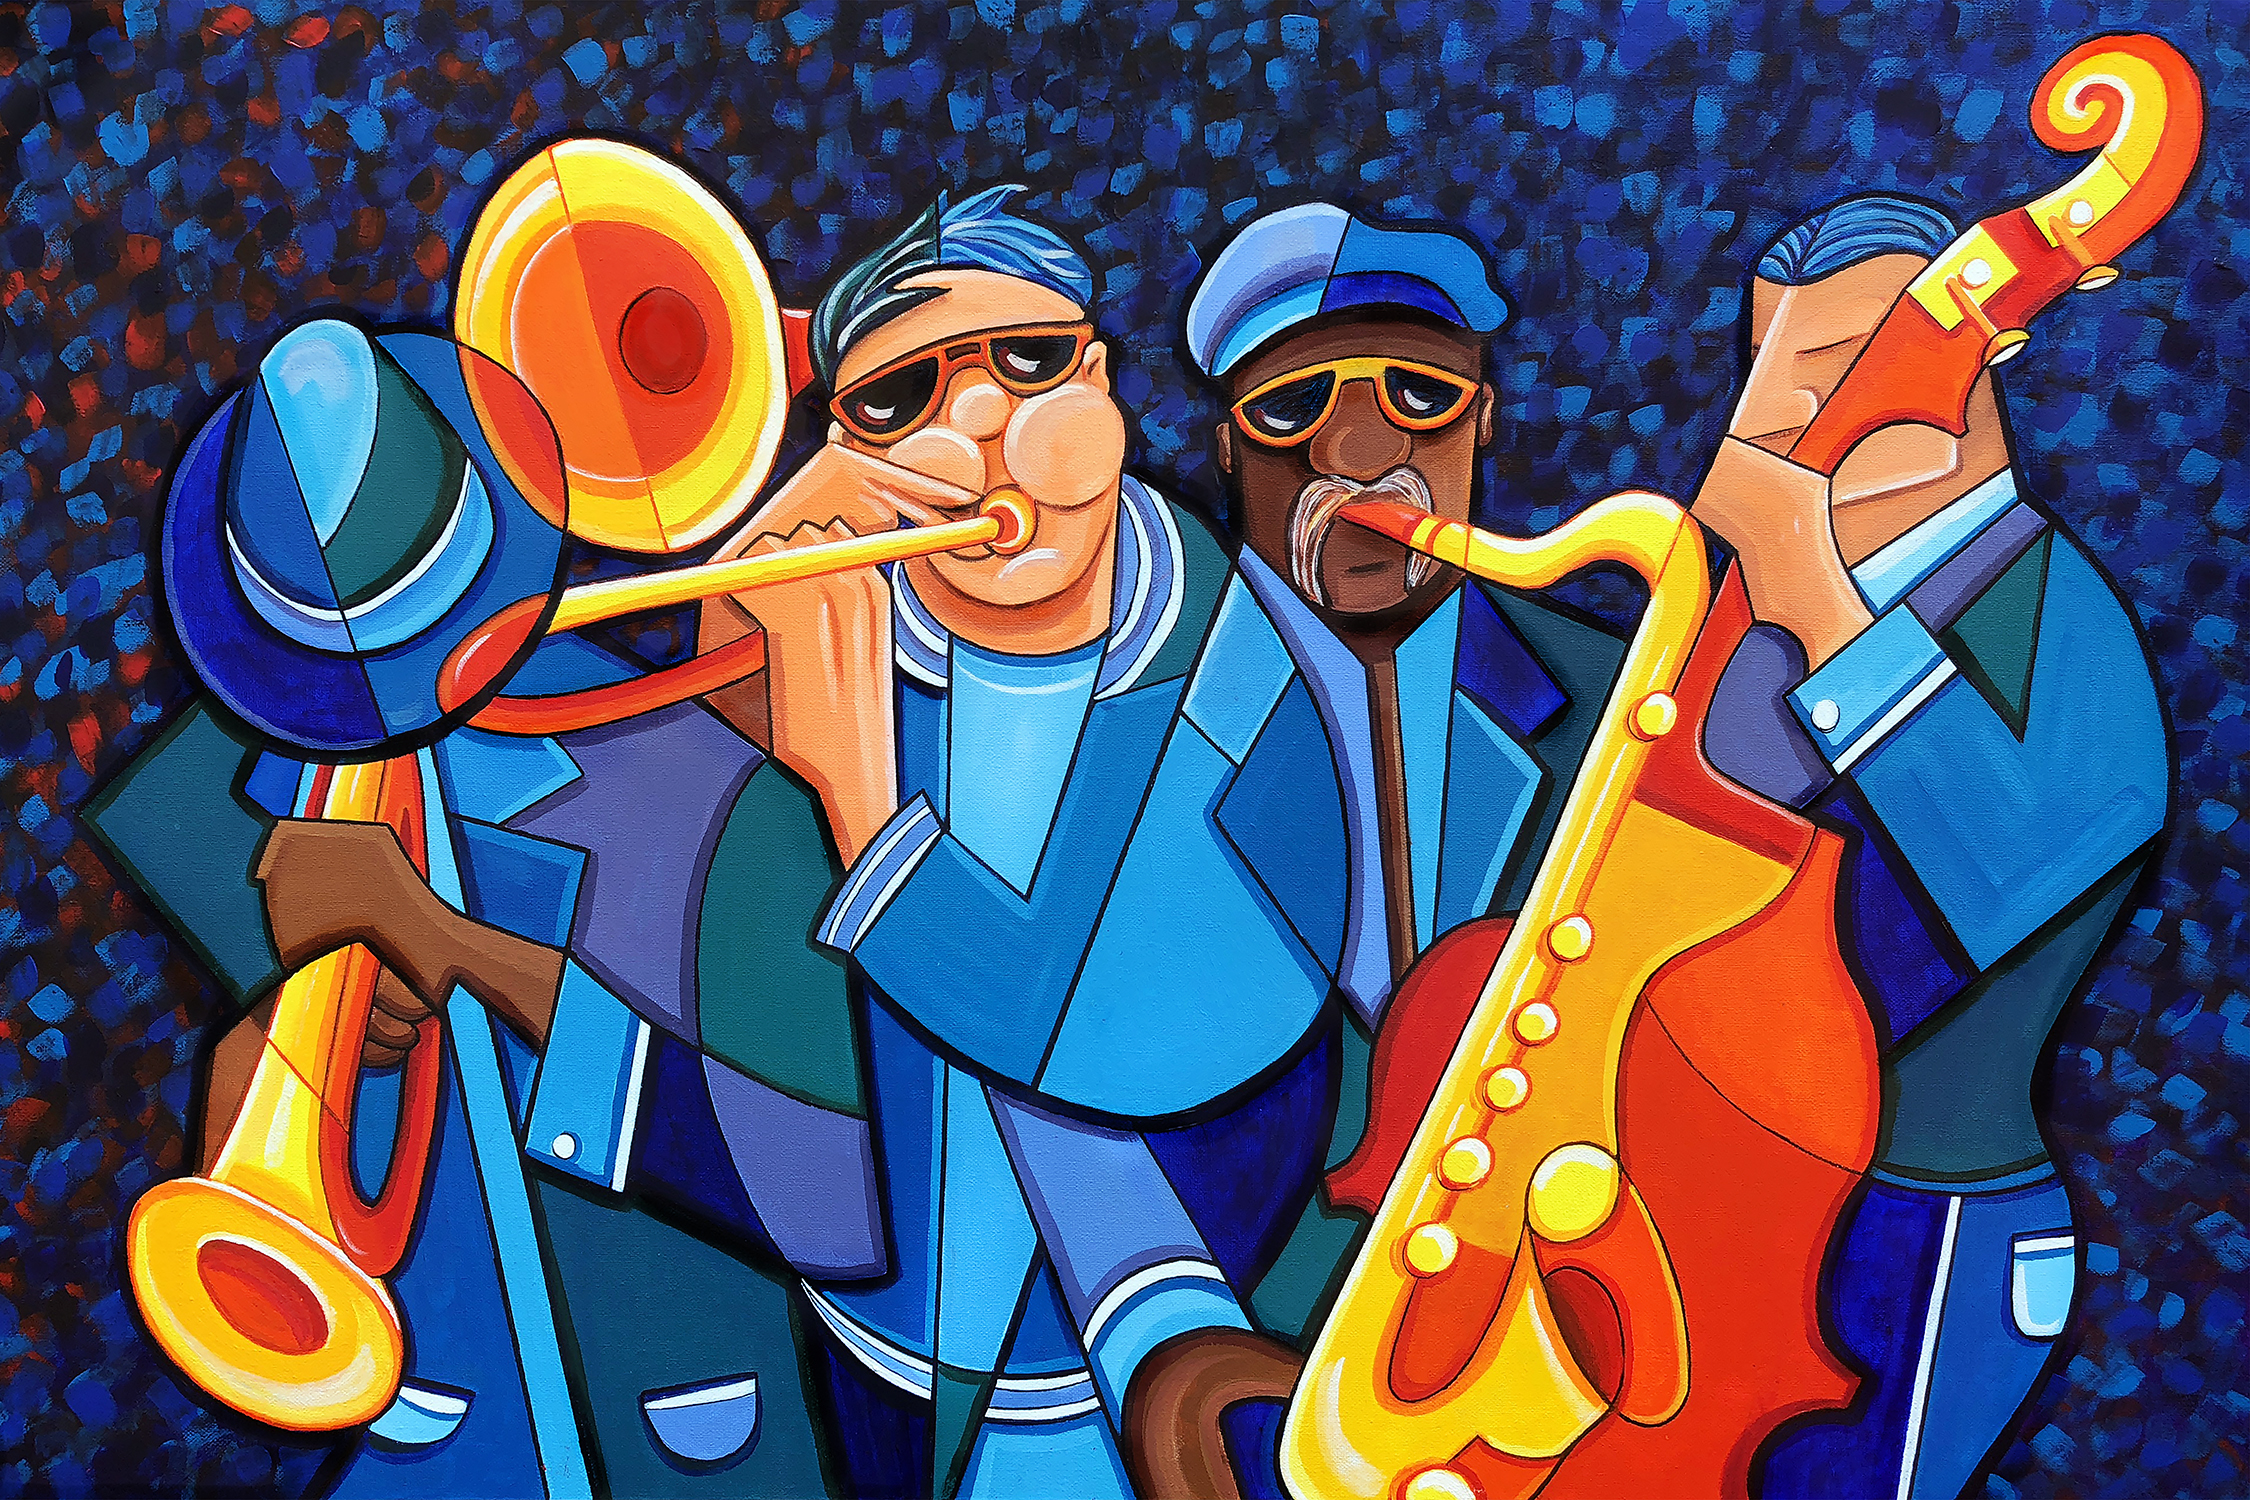 Cubism acrylic painting of a jazz band